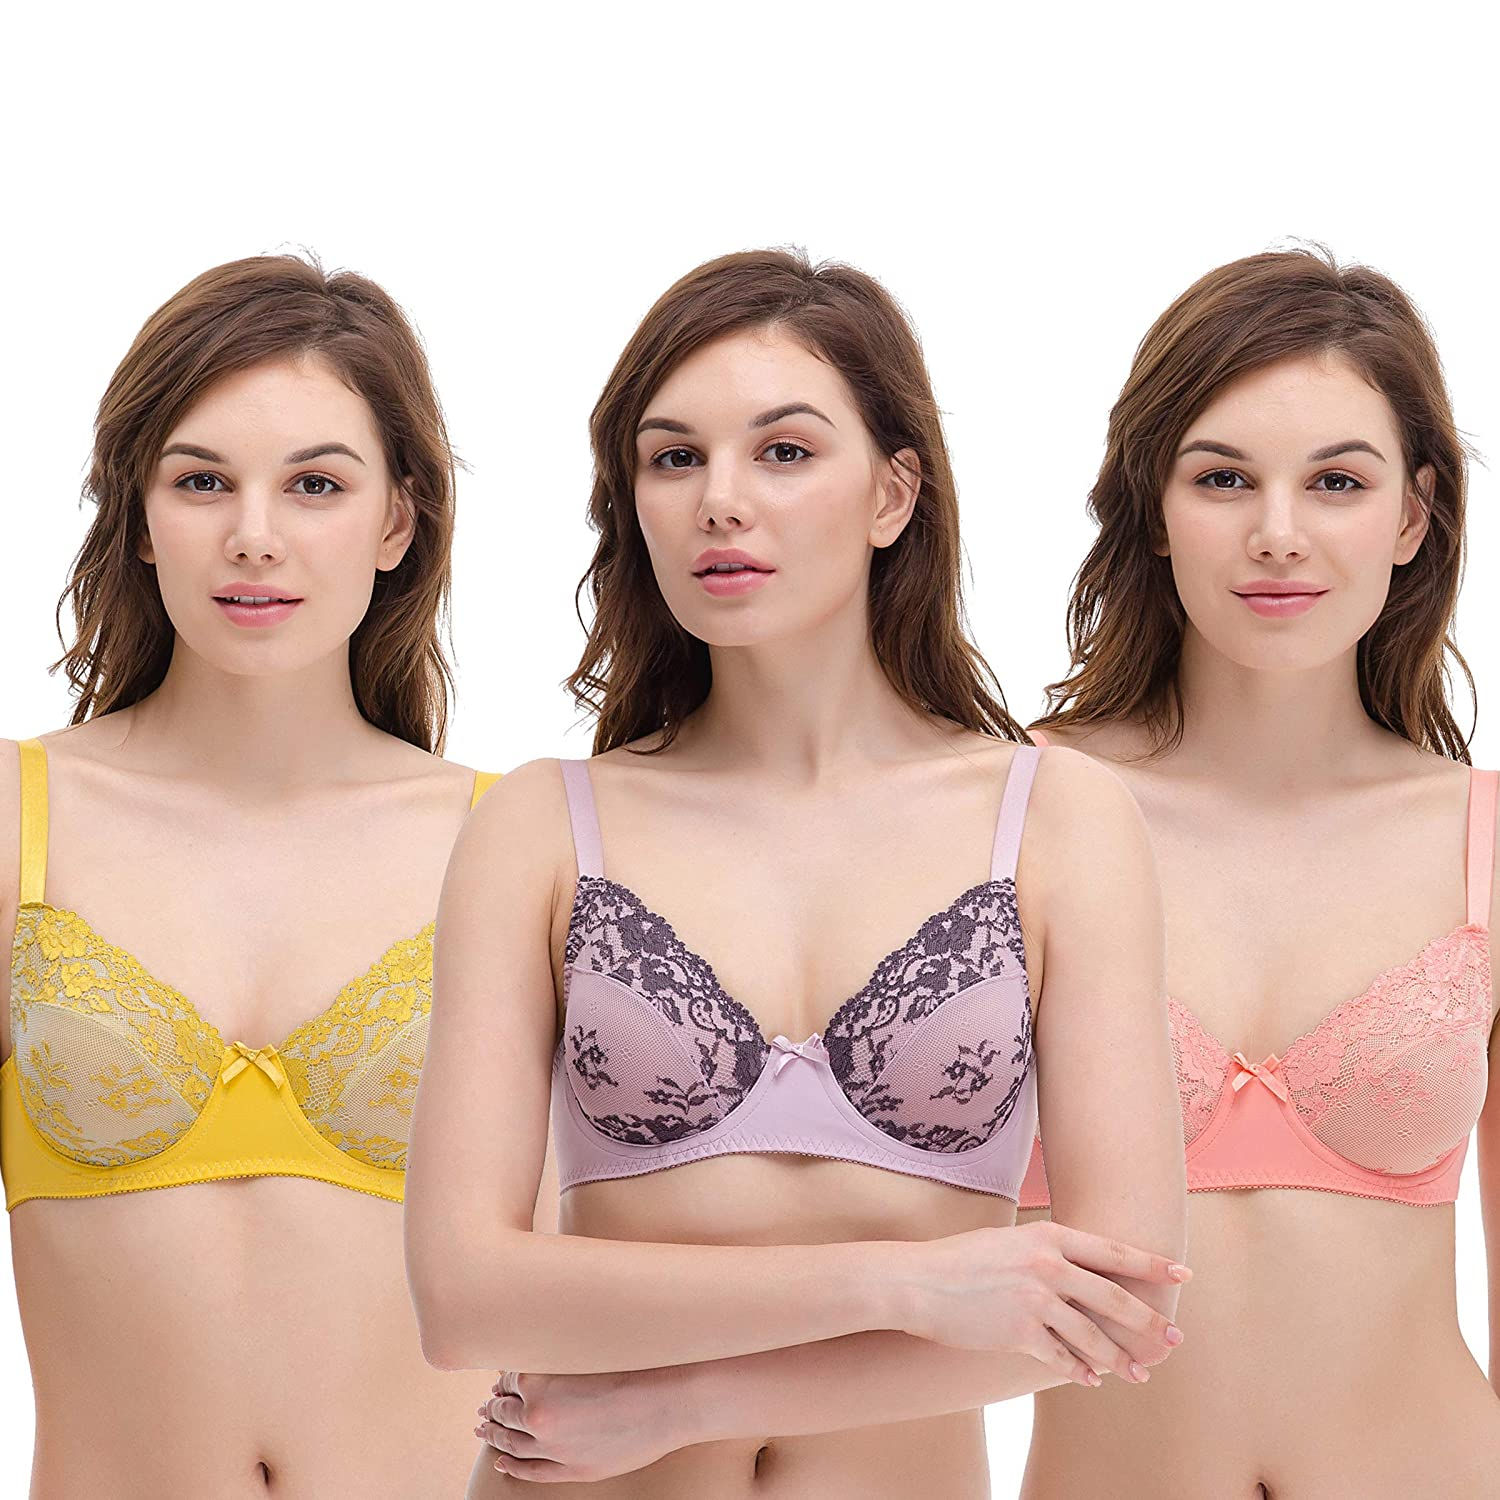 a74edccb5 Our 3 pack of bras comes in 3 different and are made of 88% nylon 12%  spandex for the most soft